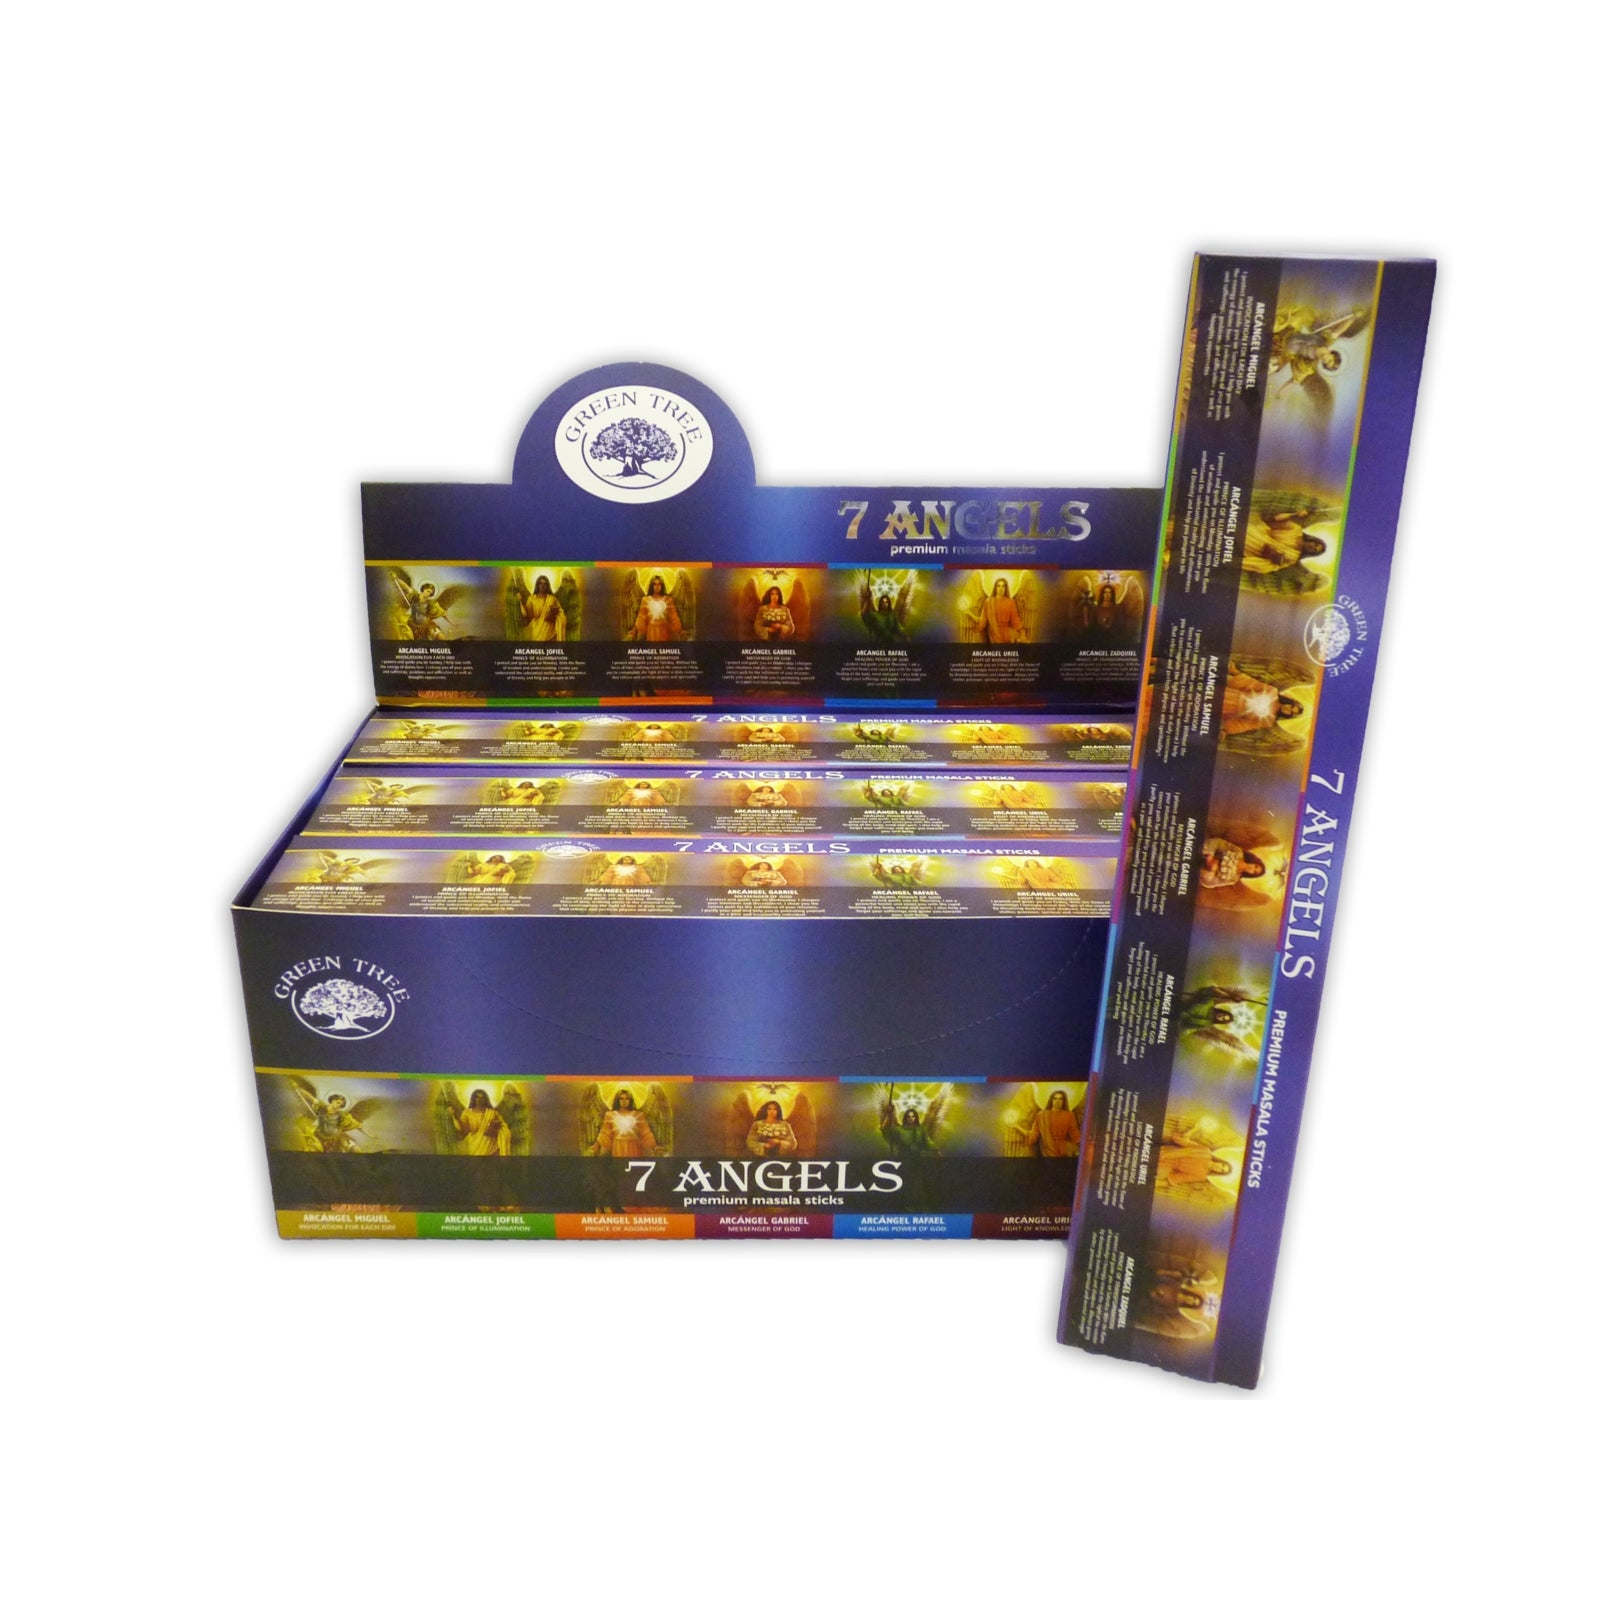 Green Tree Incense 7 Angels 15 gram